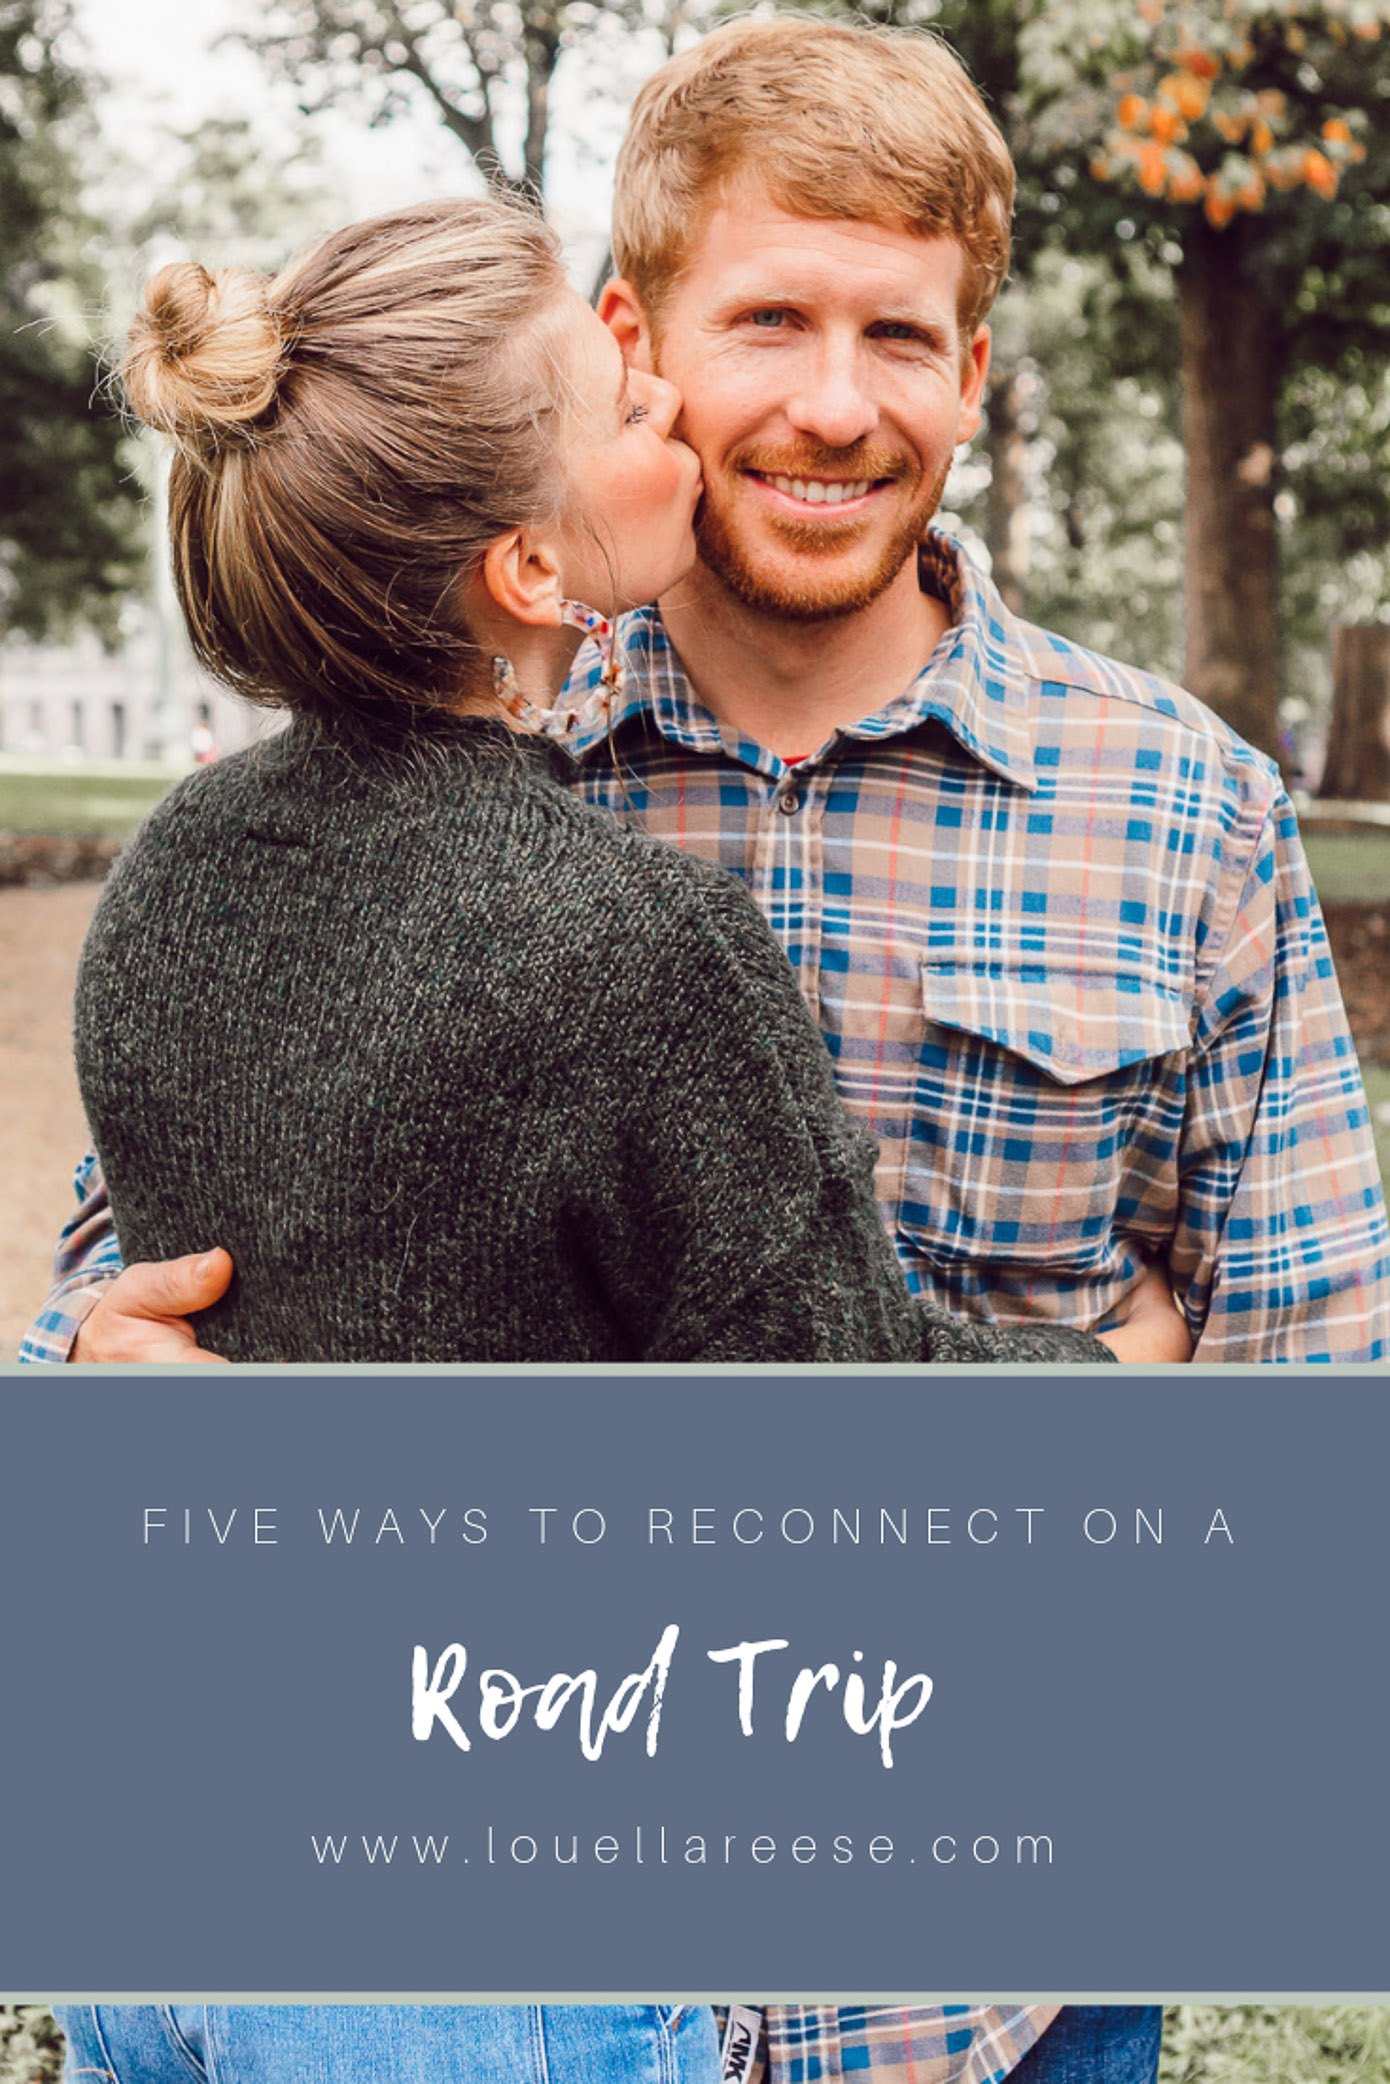 Five Ways to Reconnect on a Road Trip featured on Louella Reese